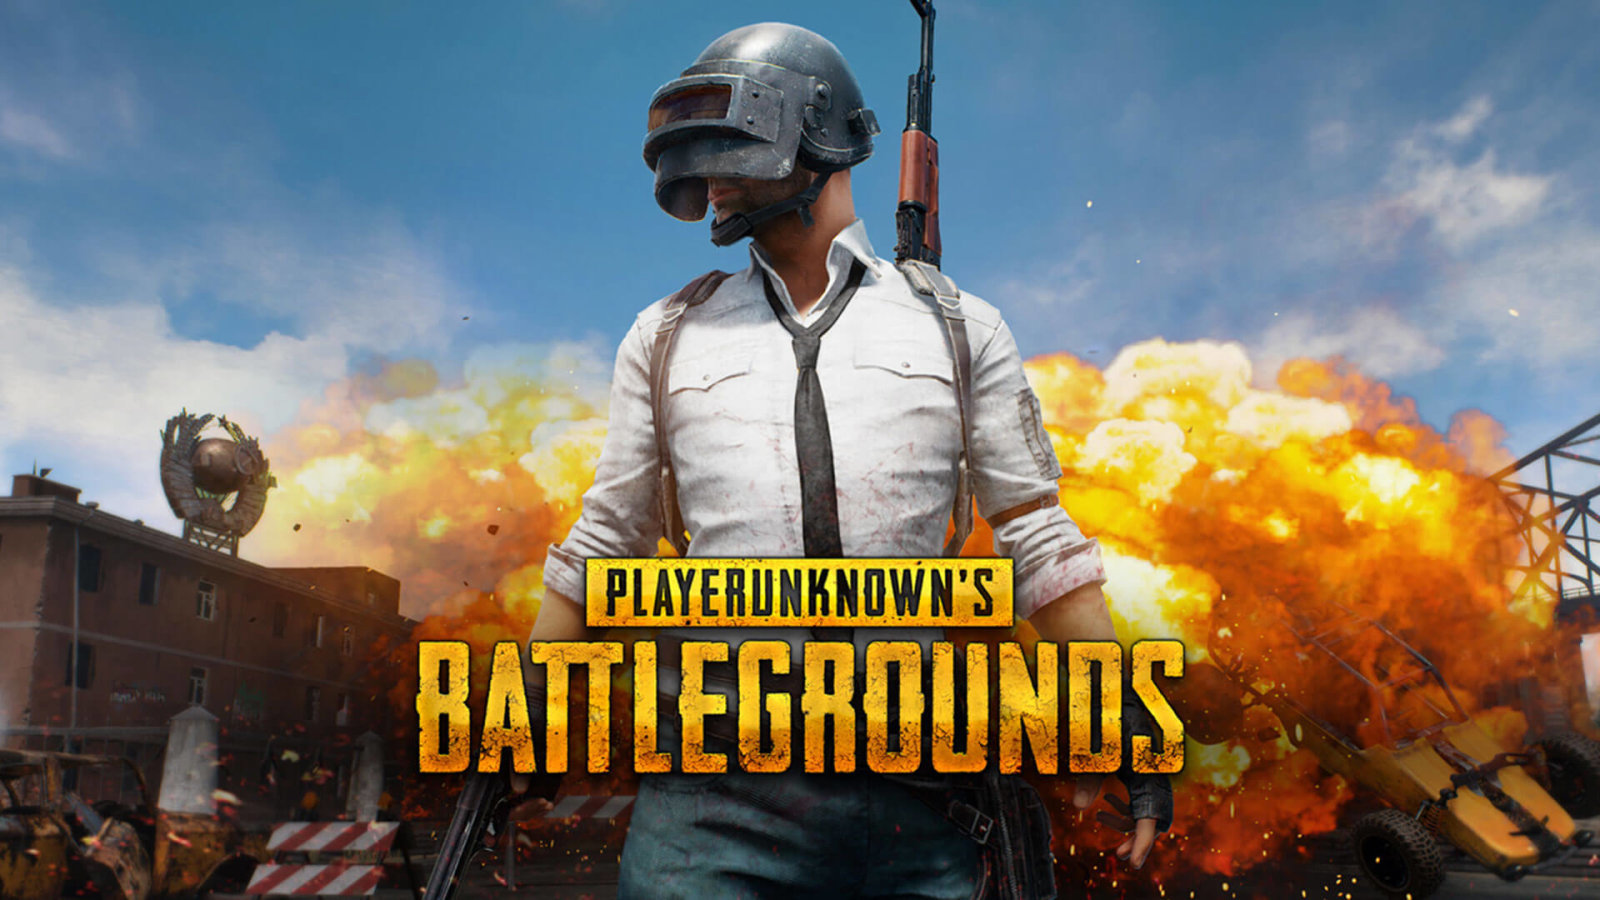 PUBG MOBILE,pubg lite server,pubg lite pre download,pubg lite new feature,PUBG Lite launch,pubg lite,download pubg lite